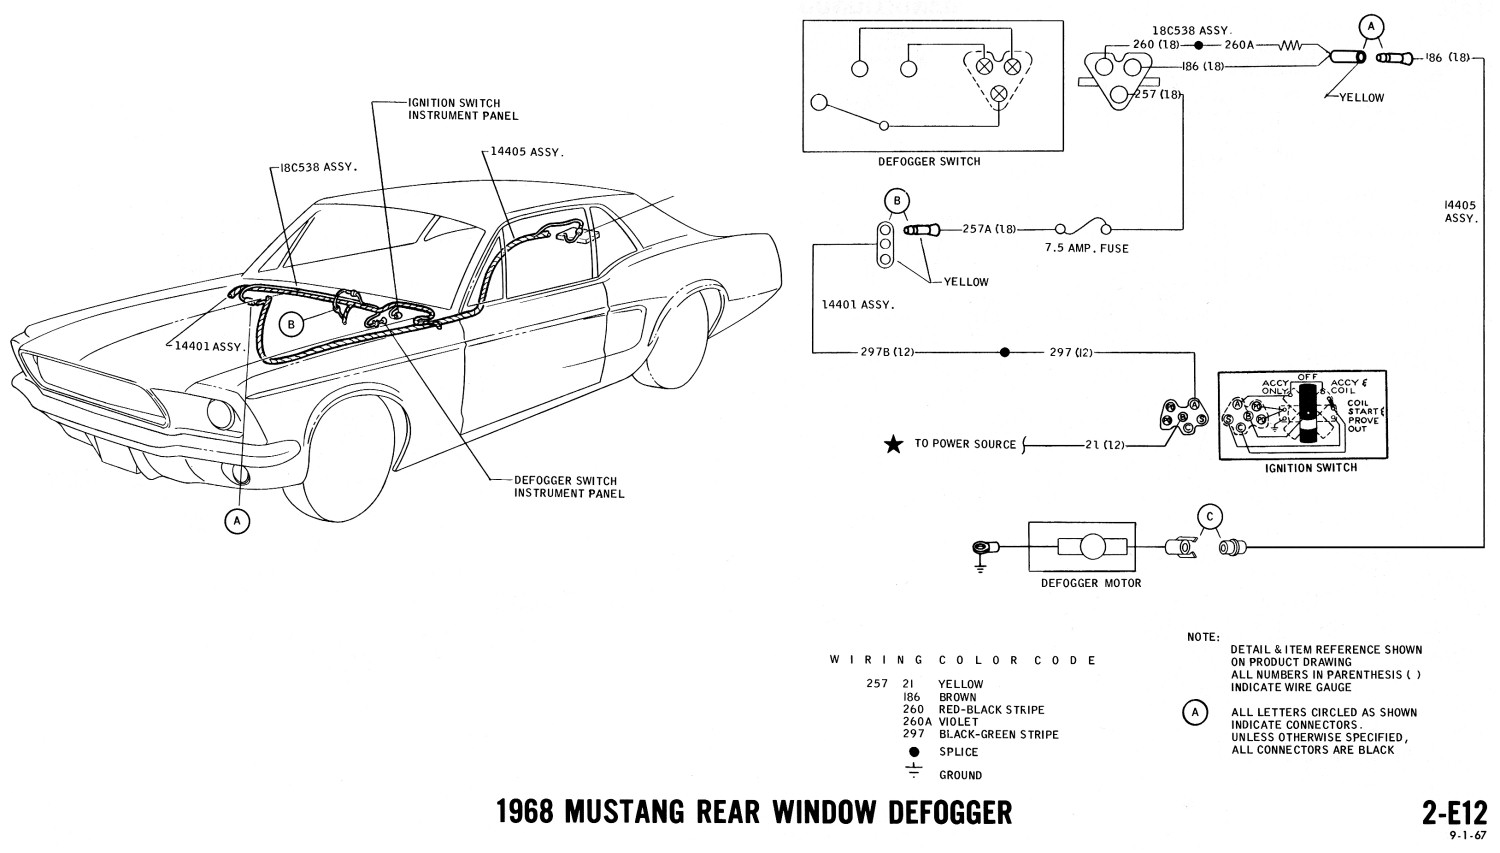 WRG-0325] 1968 Ford Mustang Steering Column Wiring Diagram on 1968 ford steering column sensor, 1968 steering box diagram, 1968 ford steering column repair, 1965 riviera steering column diagram, 1969 camaro power steering diagram, ford power steering diagram, 66 ford mustang steering diagram, 1968 mustang steering column diagram, 1968 ford radio schematic, 1967 mustang steering column diagram, 1968 chevelle steering column diagram, ford mustang wiring diagram, ford steering parts diagram, 68 chevelle steering column diagram, 1970 nova steering column diagram, 1973 f100 steering diagram, 67 c10 column diagram, 1965 econoline shift column diagram, 1967 mustang power steering diagram,